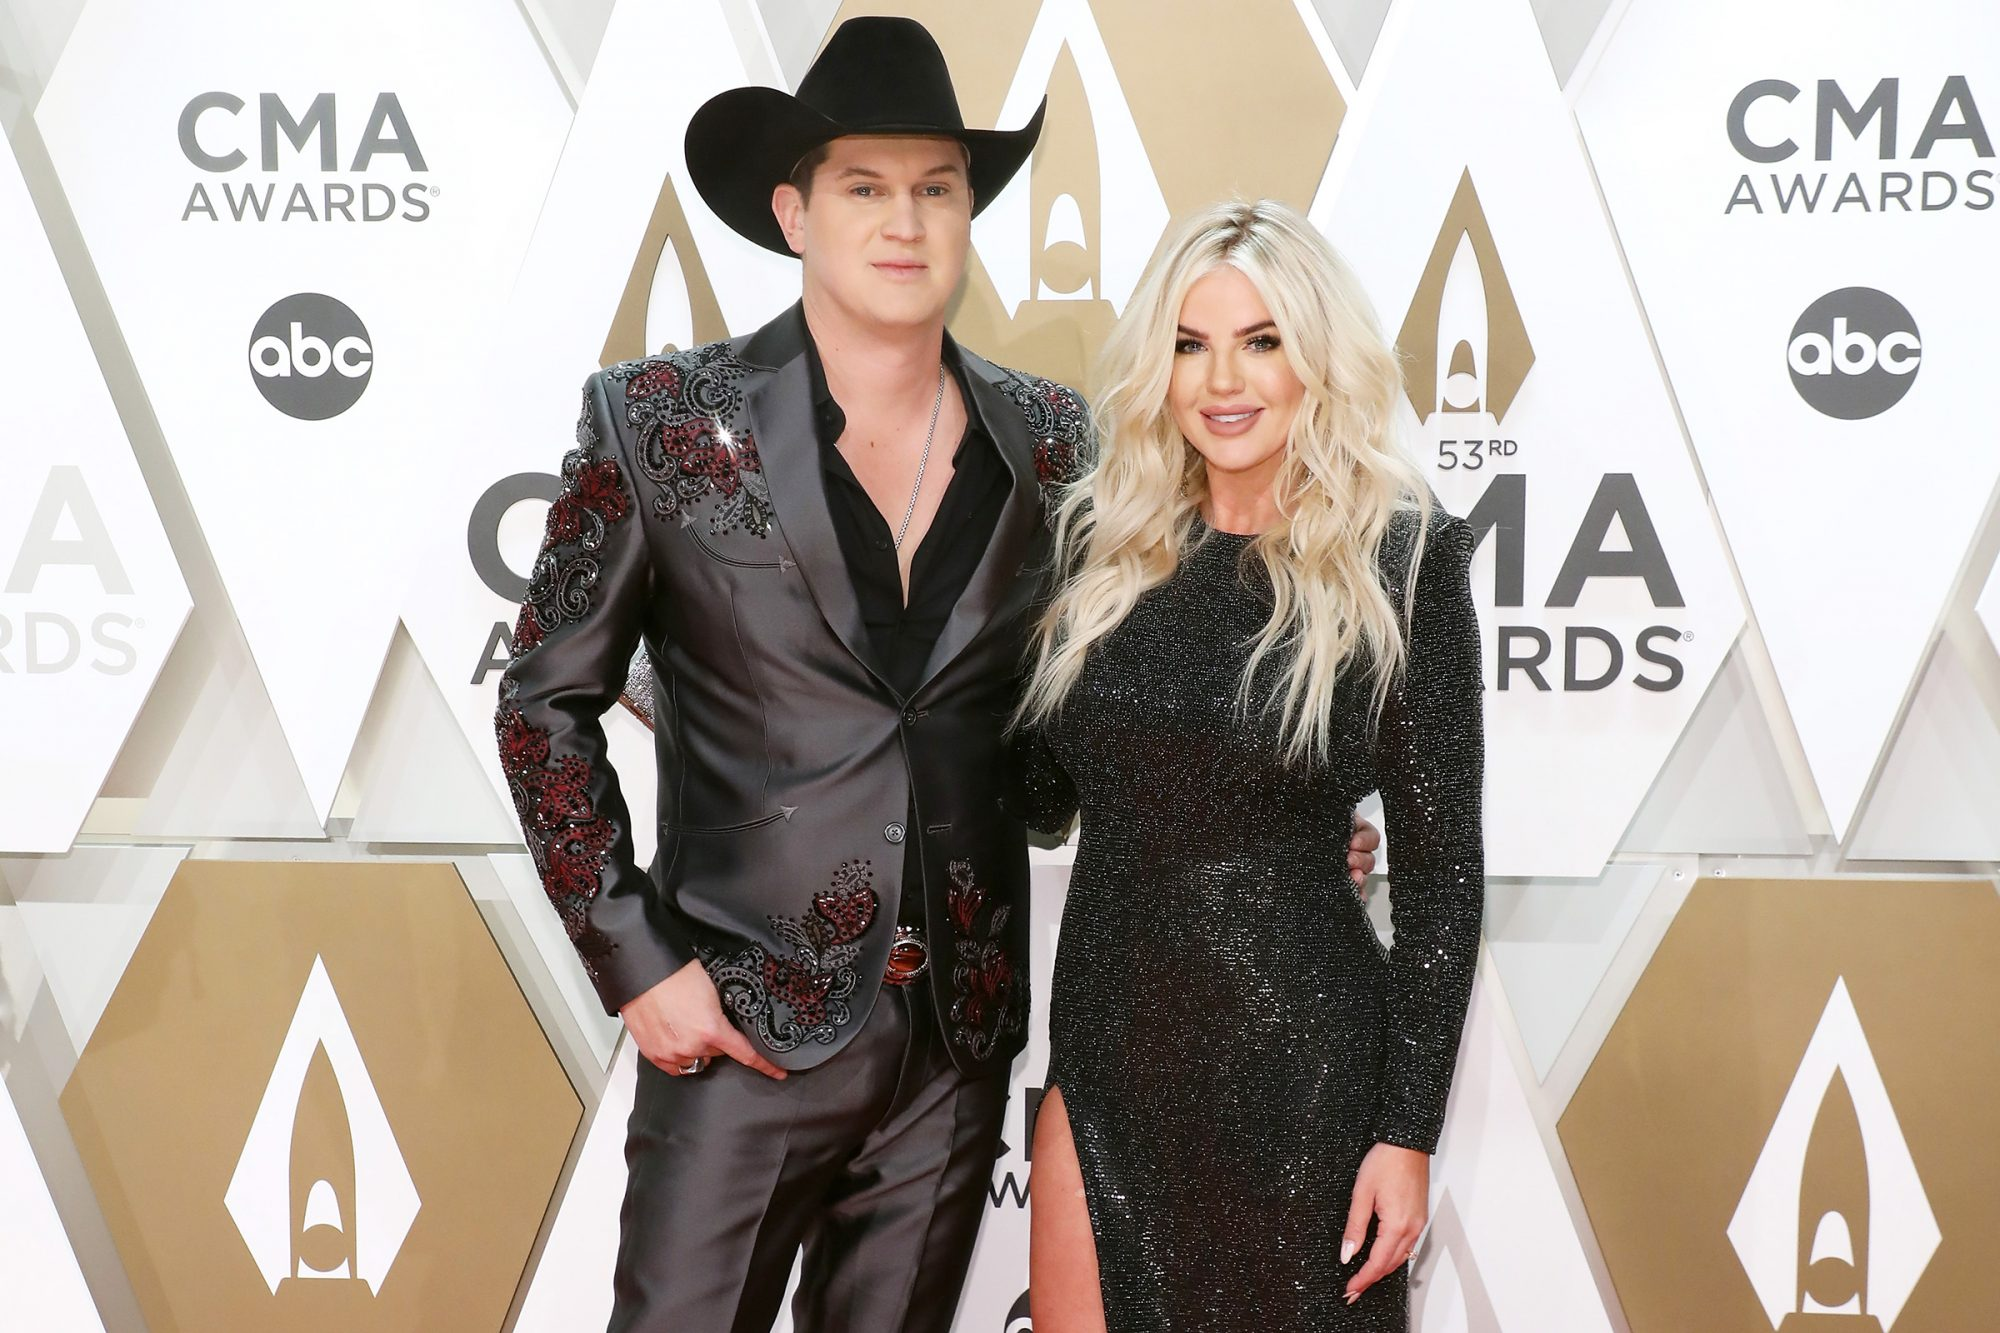 Jon Pardi and Summer Duncan attend the 53nd annual CMA Awards at Bridgestone Arena on November 13, 2019 in Nashville, Tennessee